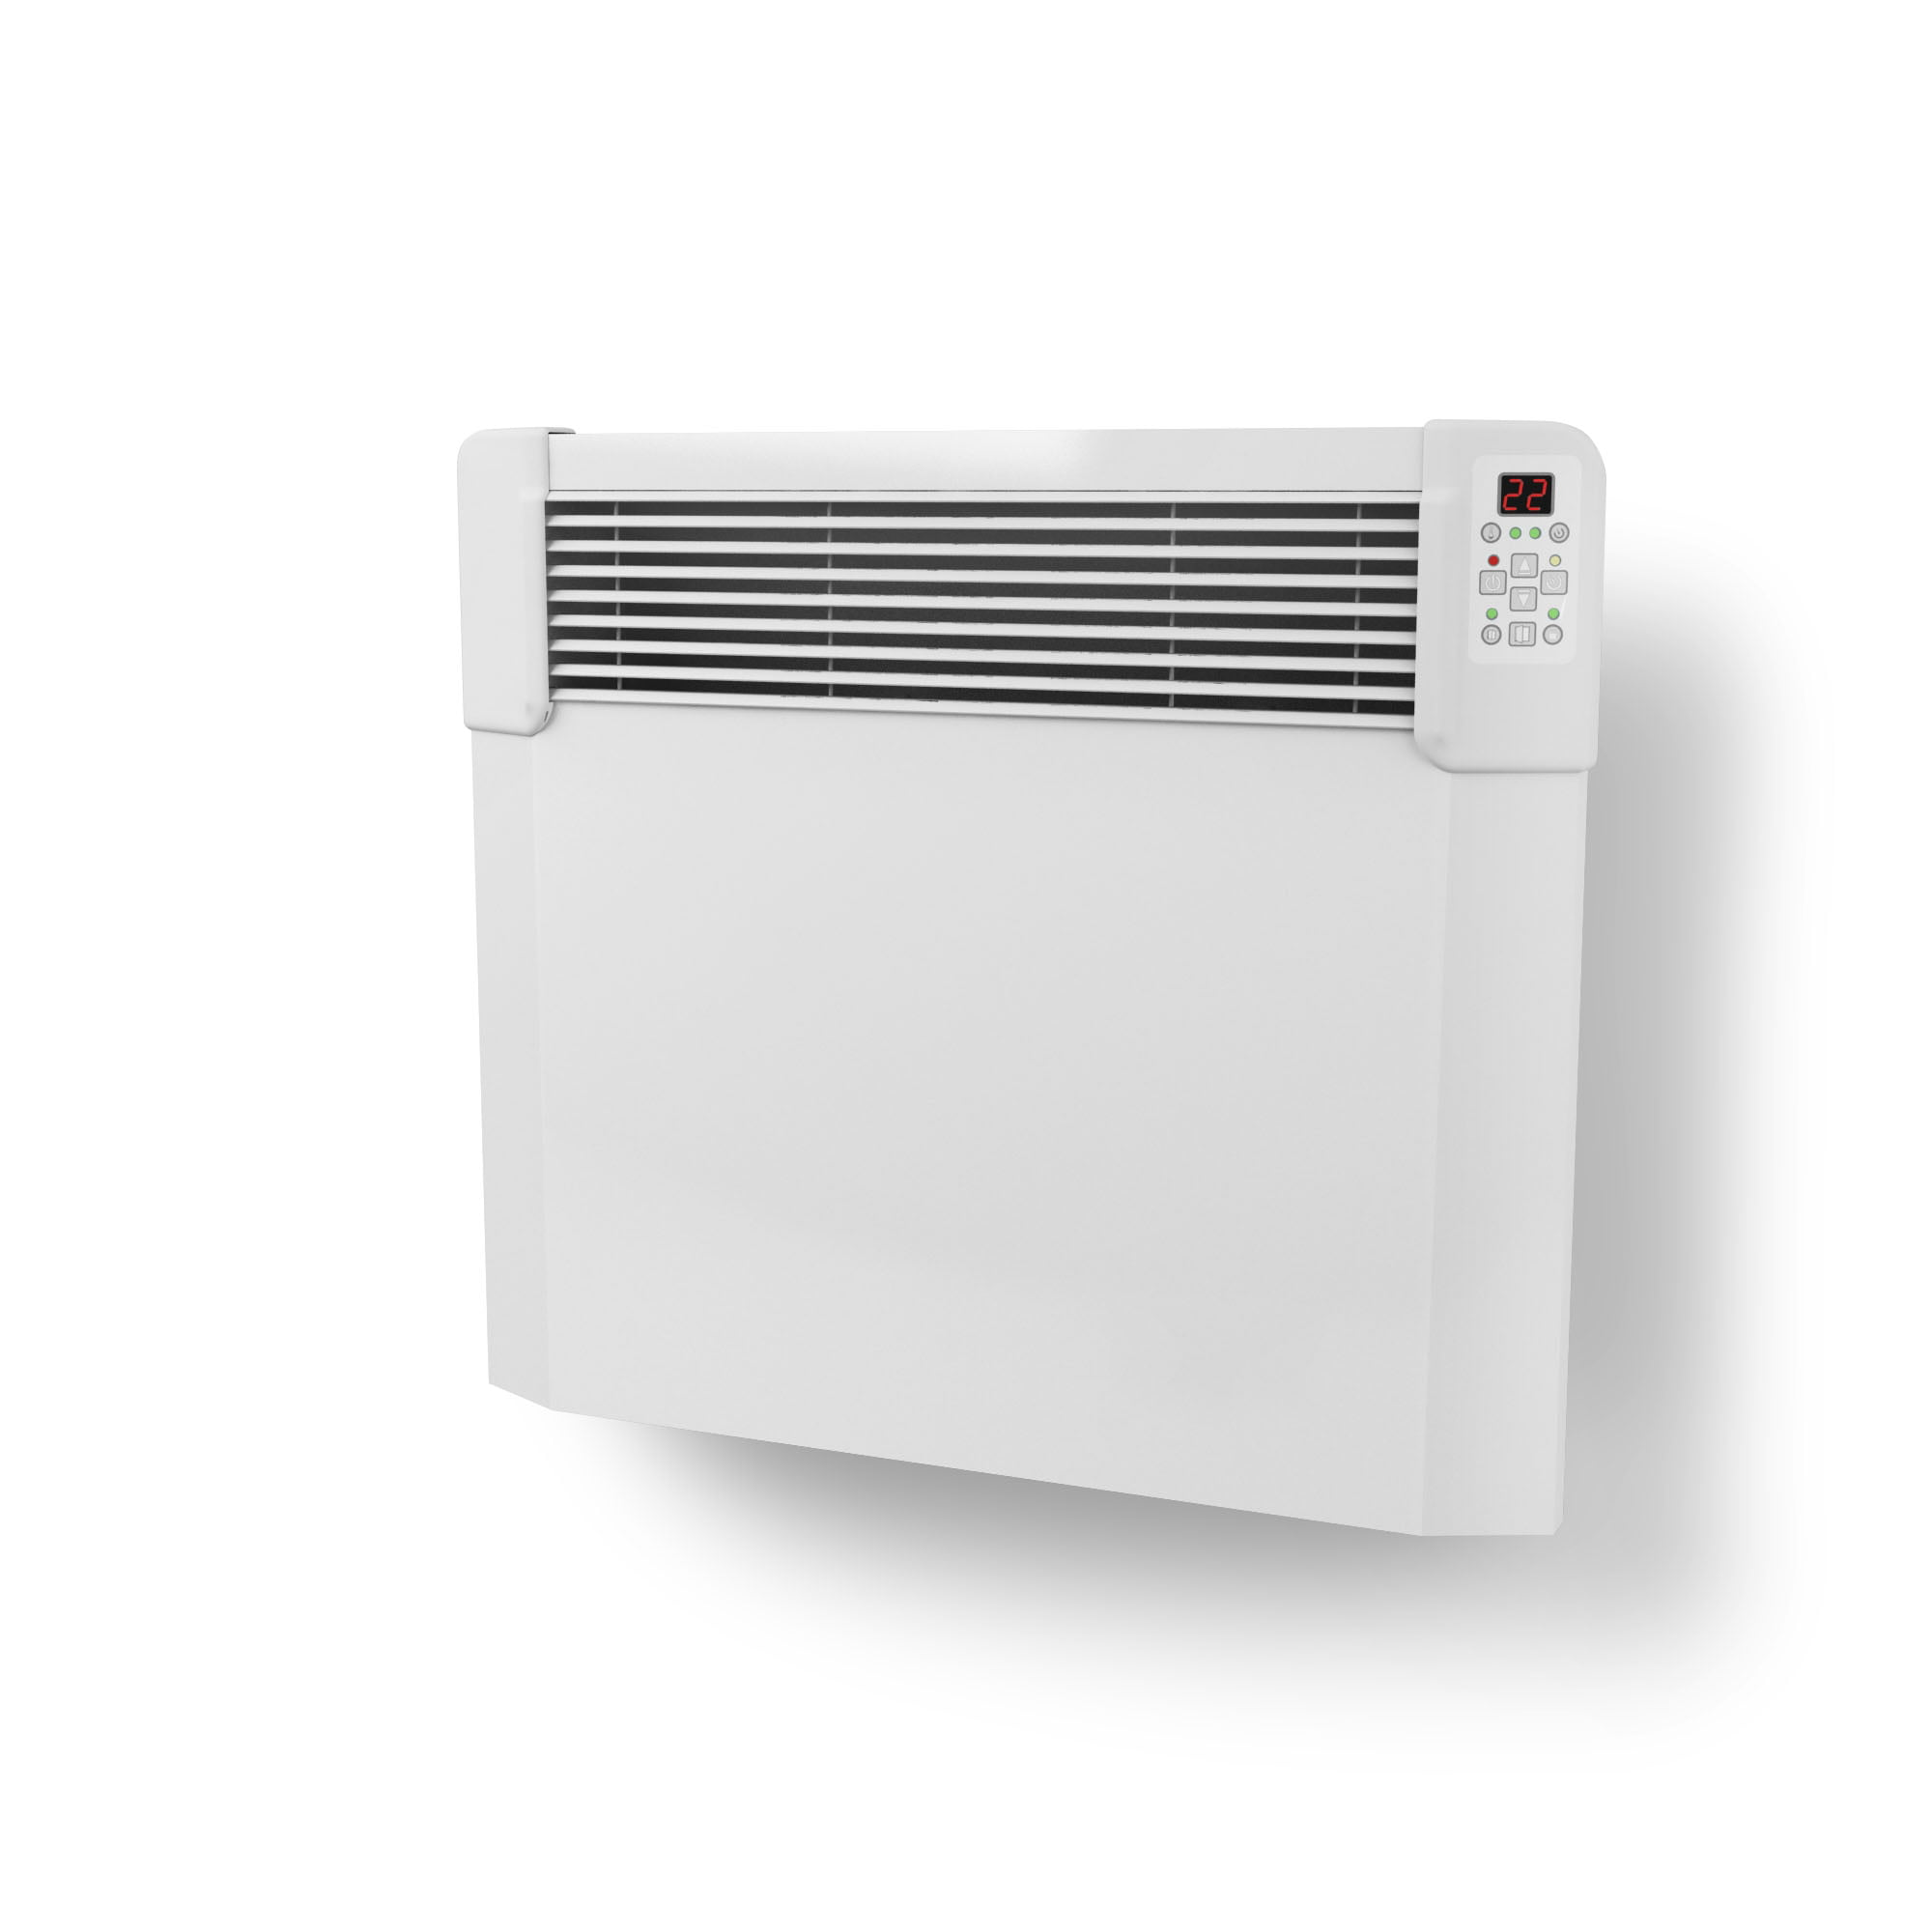 Tesy Cn04 Electric Convection Radiator Wall Mounted Panel